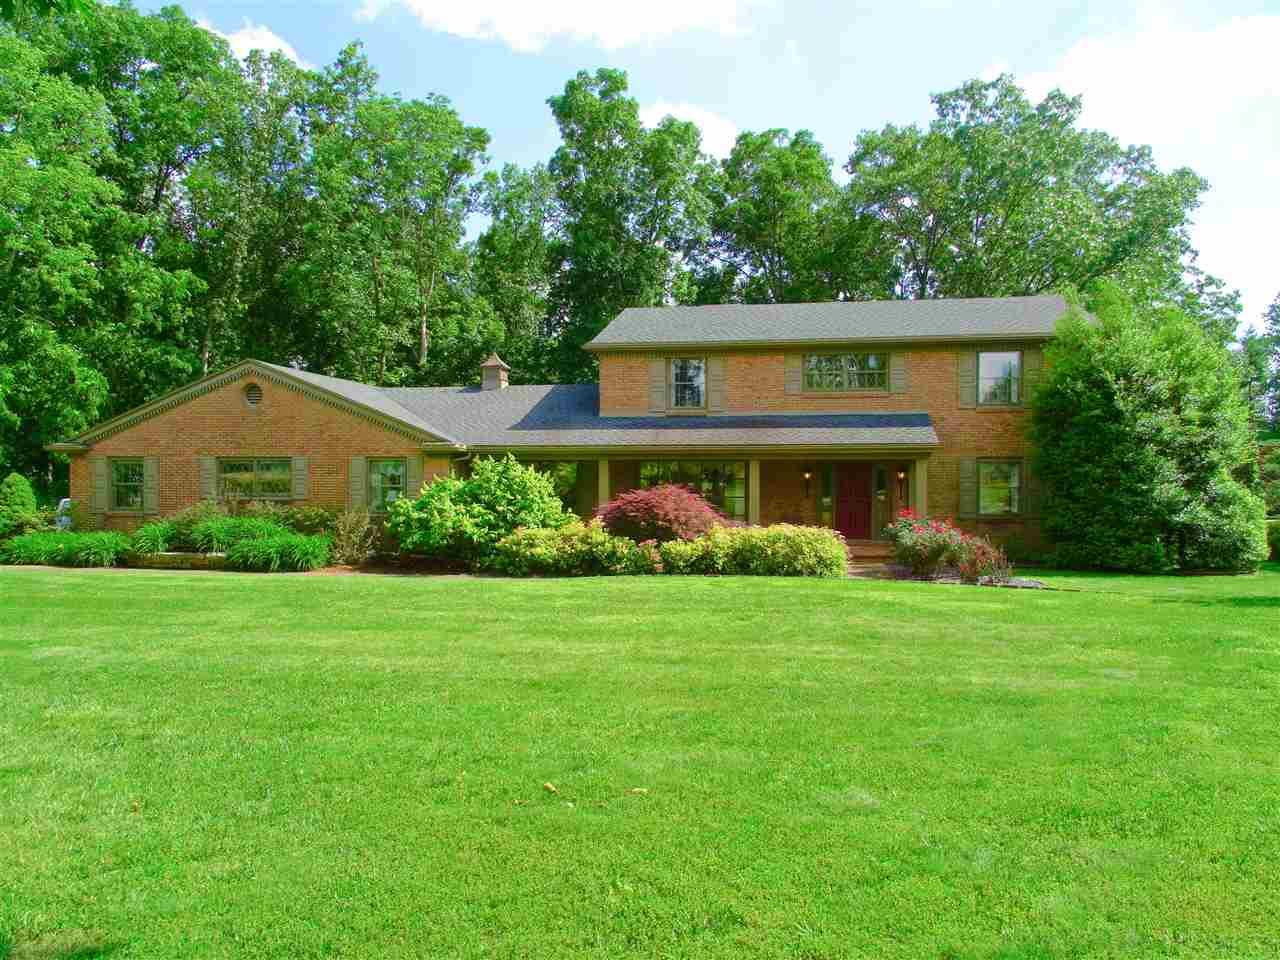 1219 E Boonville New Harmony, Evansville, IN 47725